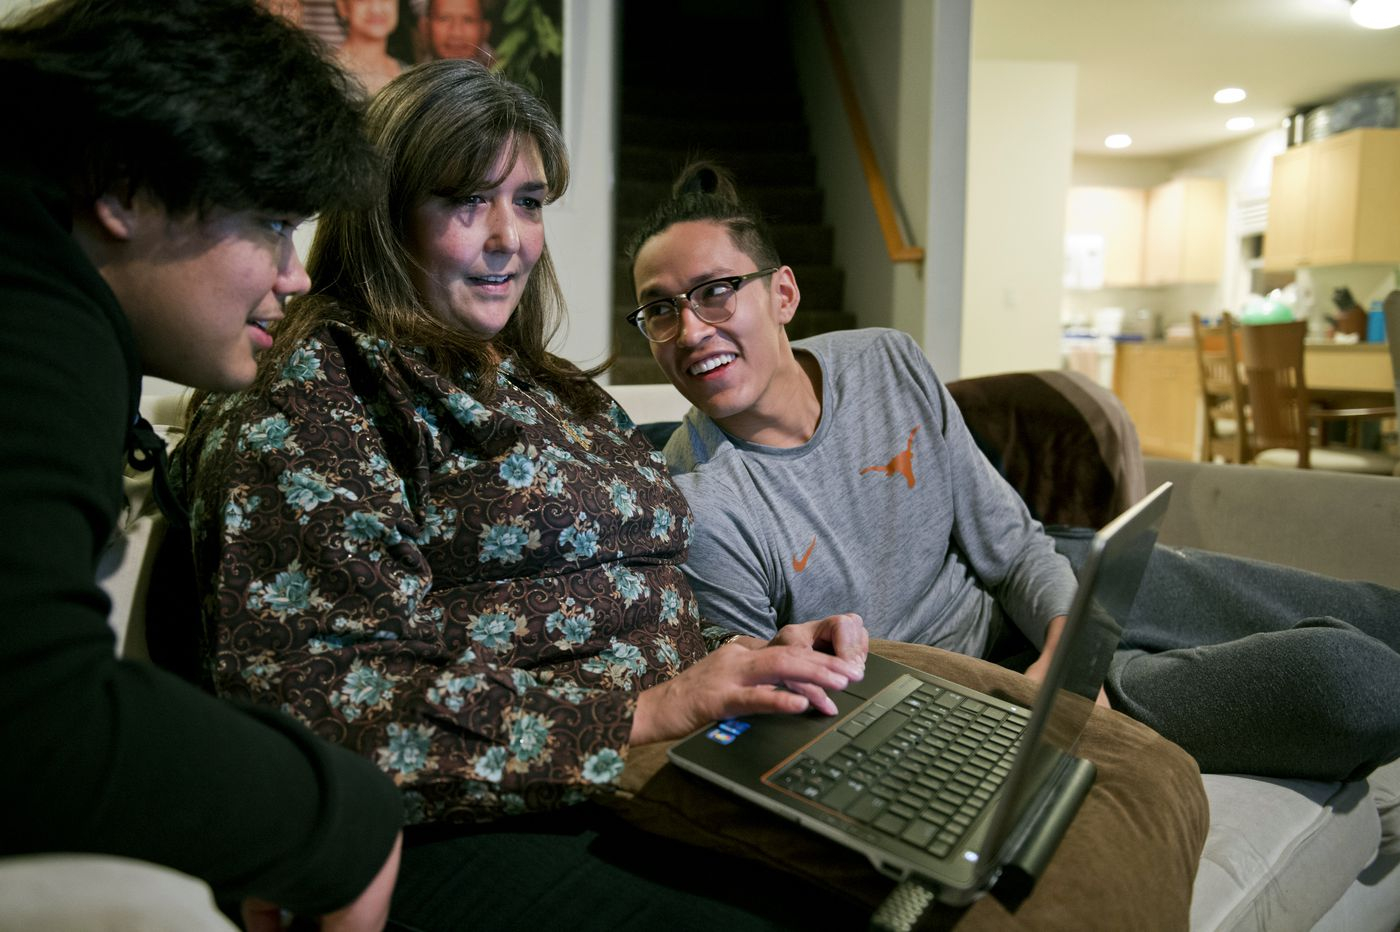 Taqulik Hepa browses through family photos on a computer with her sons Keoni, left, and Kamaka. Taqulik divides her time between home in Utqiagvik and being with her husband and sons in Portland. (Marc Lester / ADN)